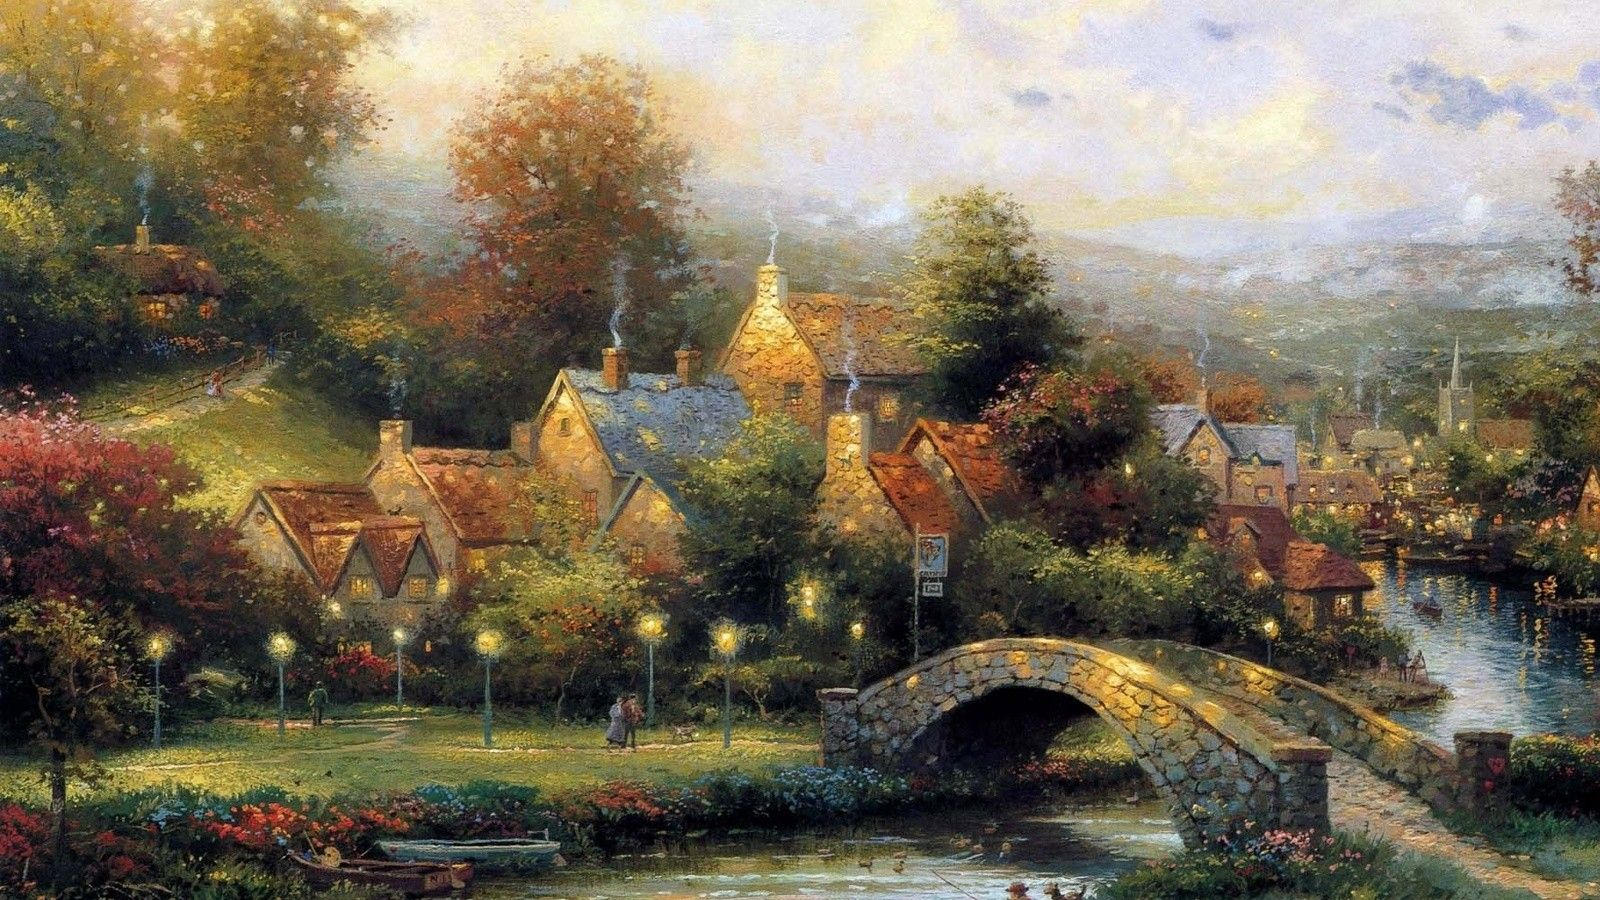 Pix For  Thomas Kinkade Spring Wallpaper  Thomas Kinkade -2258